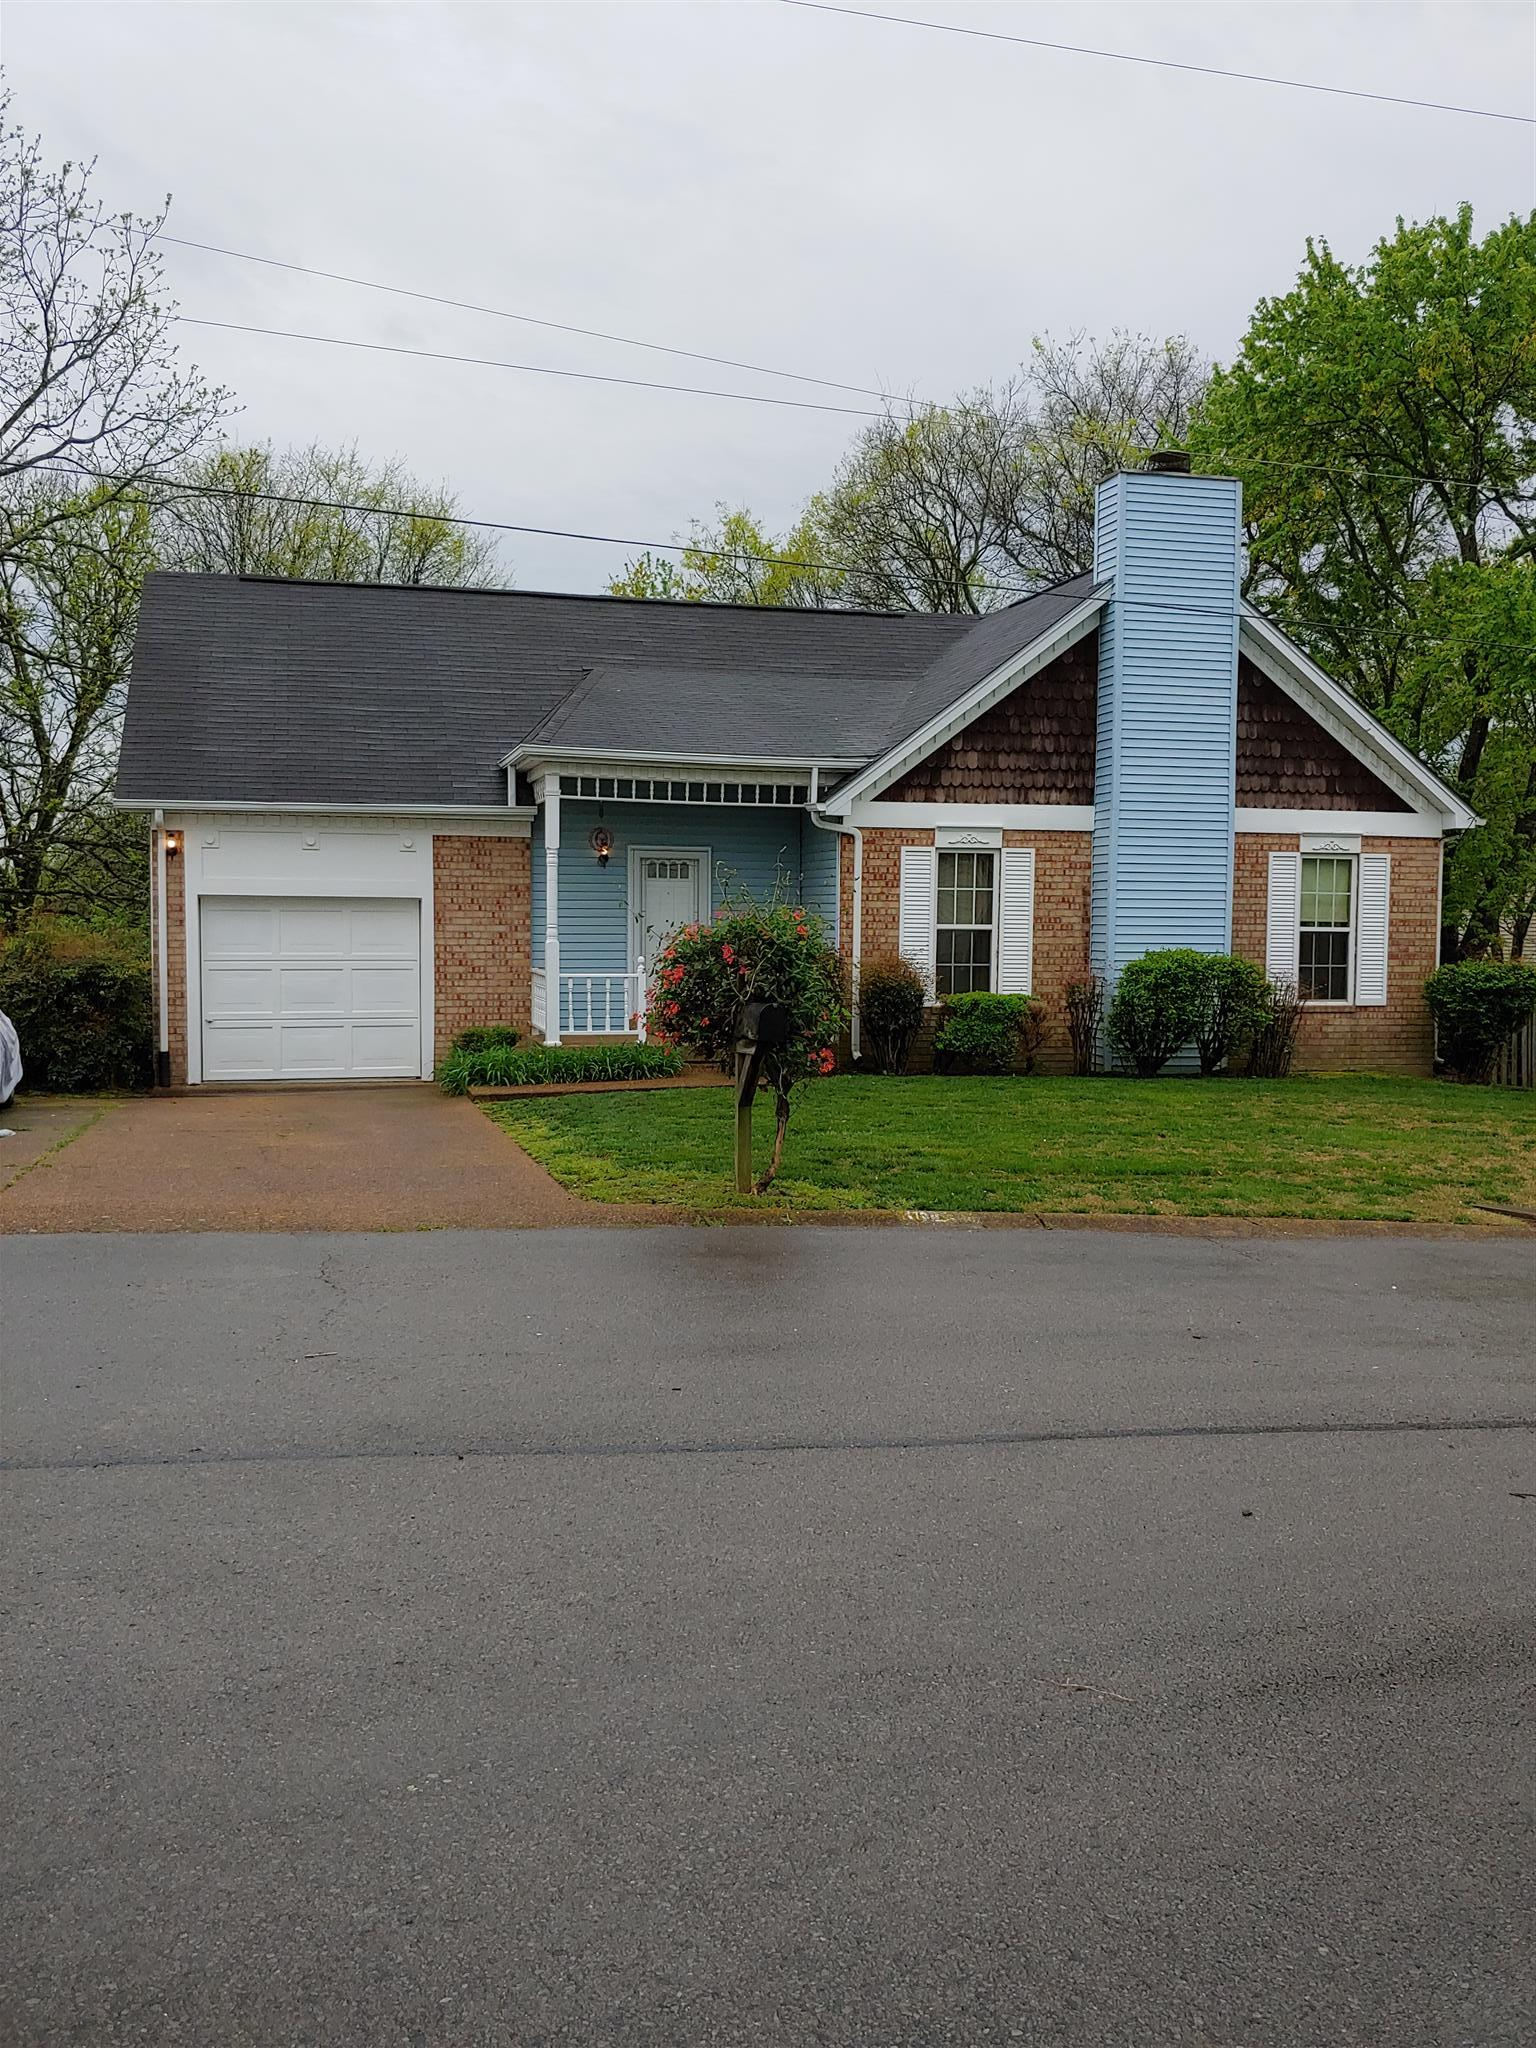 1701 Hunters Branch Rd, Nashville-Antioch in Davidson County County, TN 37013 Home for Sale